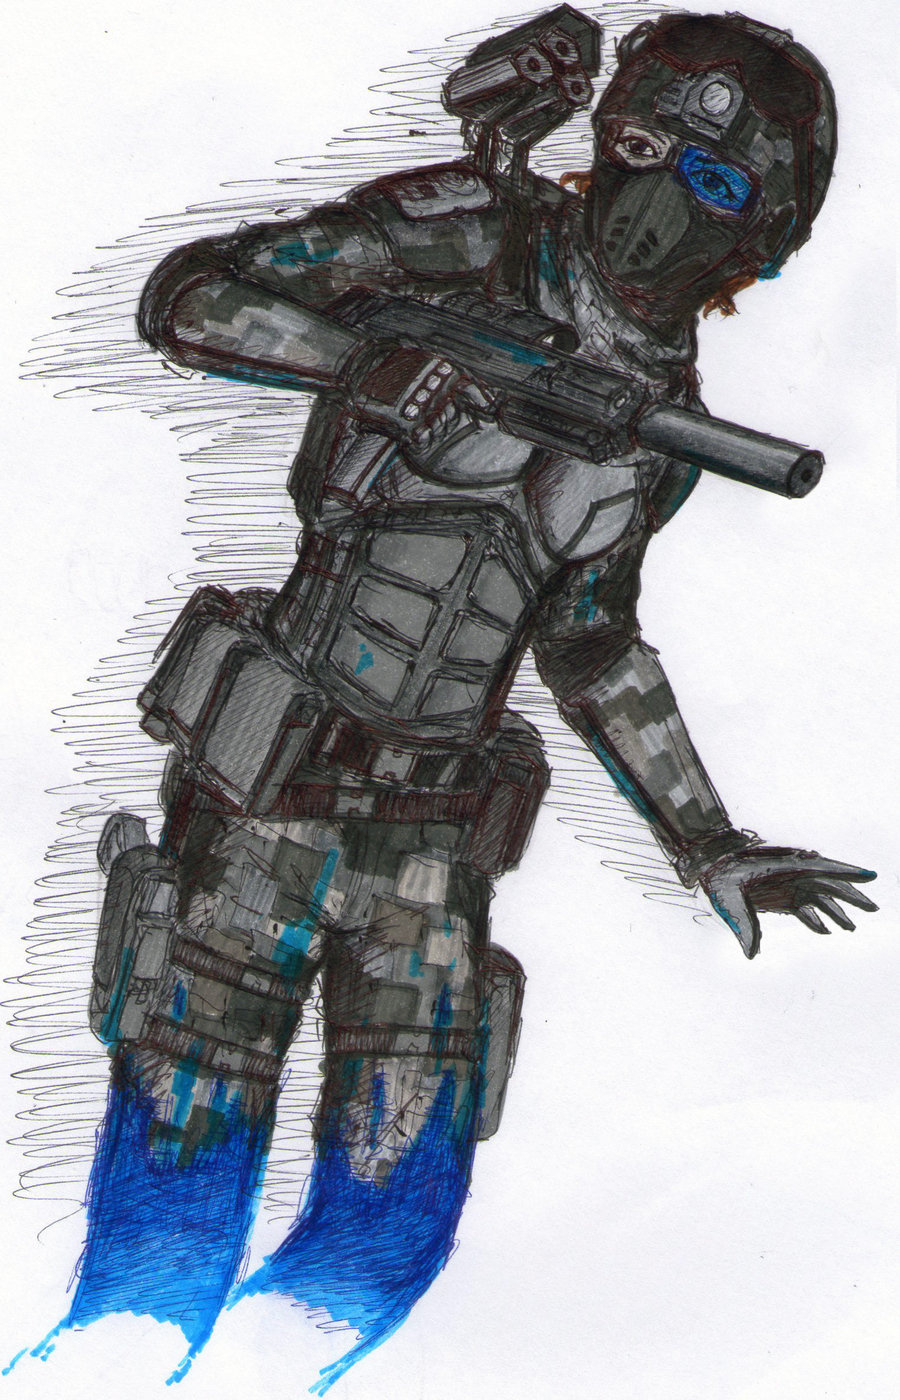 Drawn armor future anime Soldier Warrior Pinterest drawing soldier